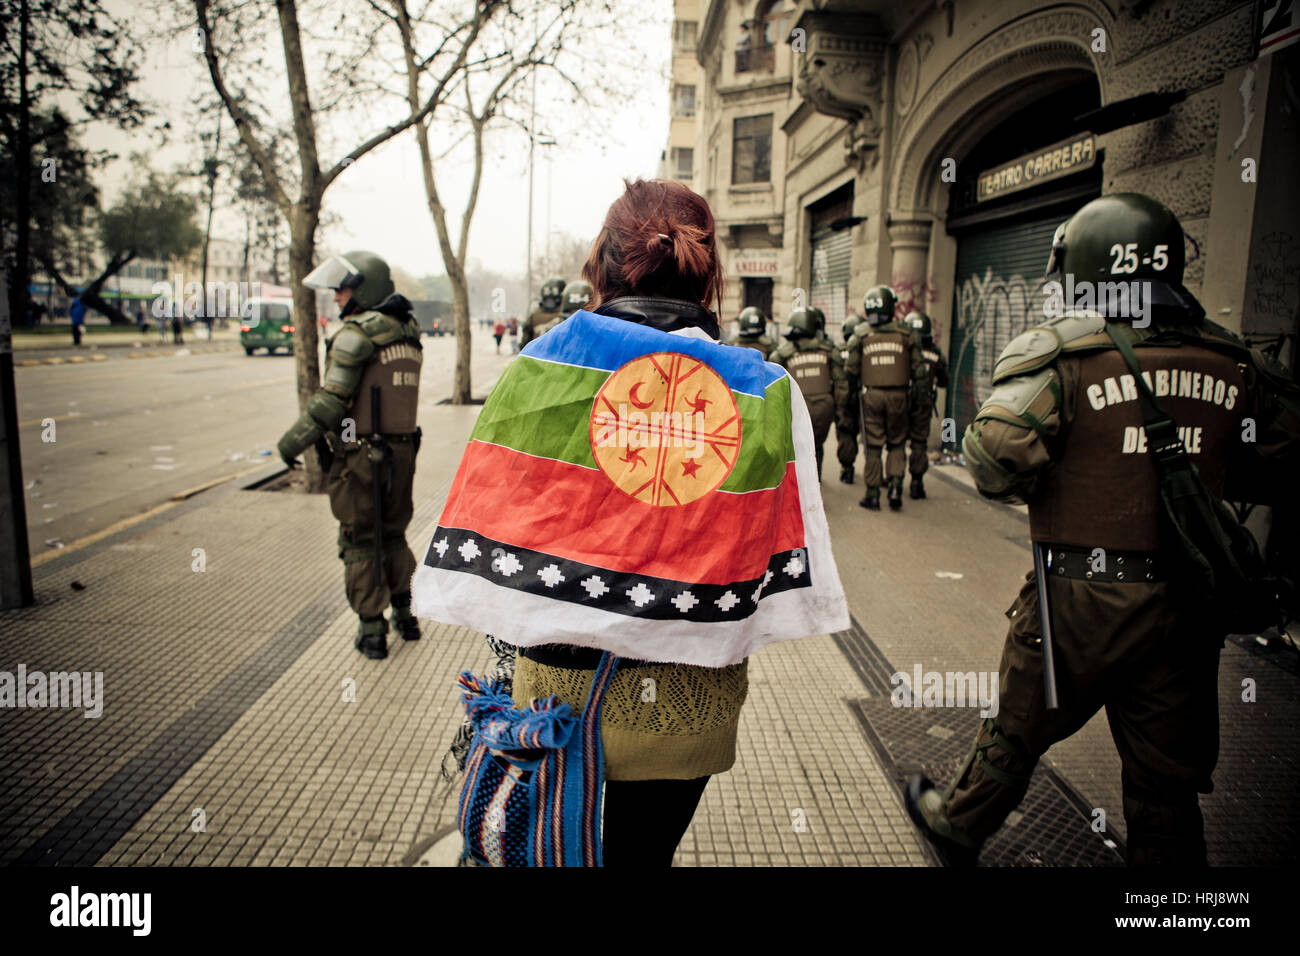 A woman demostrator with a Mapuche flag on his back walks by riot police during a student strike in Santiago, Chile. Stock Photo